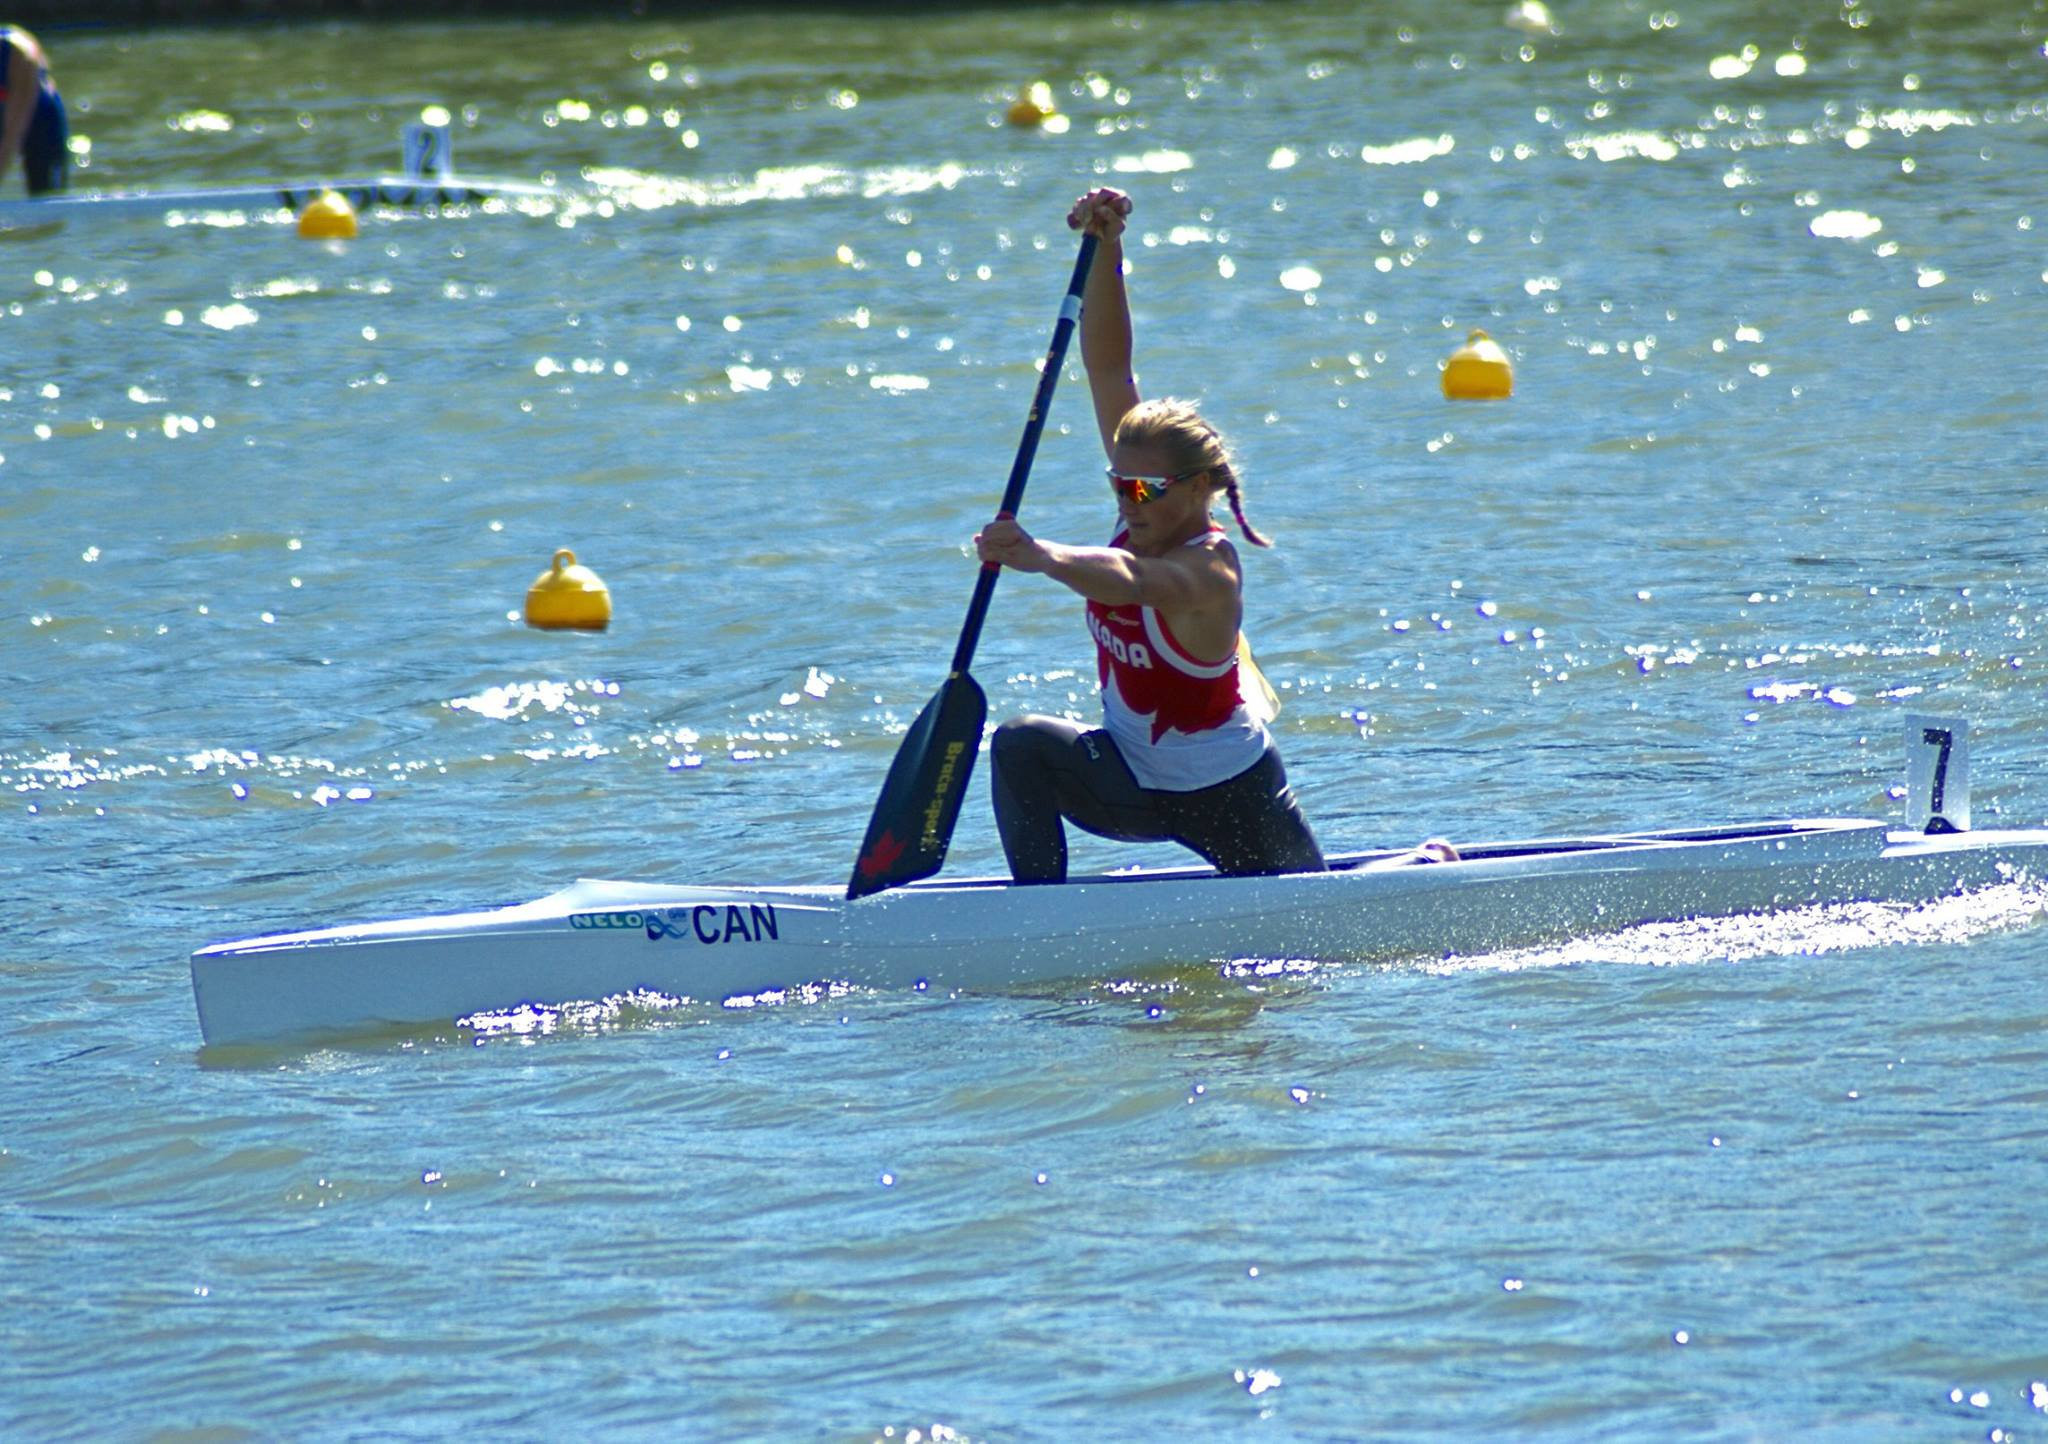 Sophia Jensen has won her second gold medal of the 2019 International Canoe Federation Junior and Under-23 Sprint World Championships ©Twitter/Canoe Kayak Canada